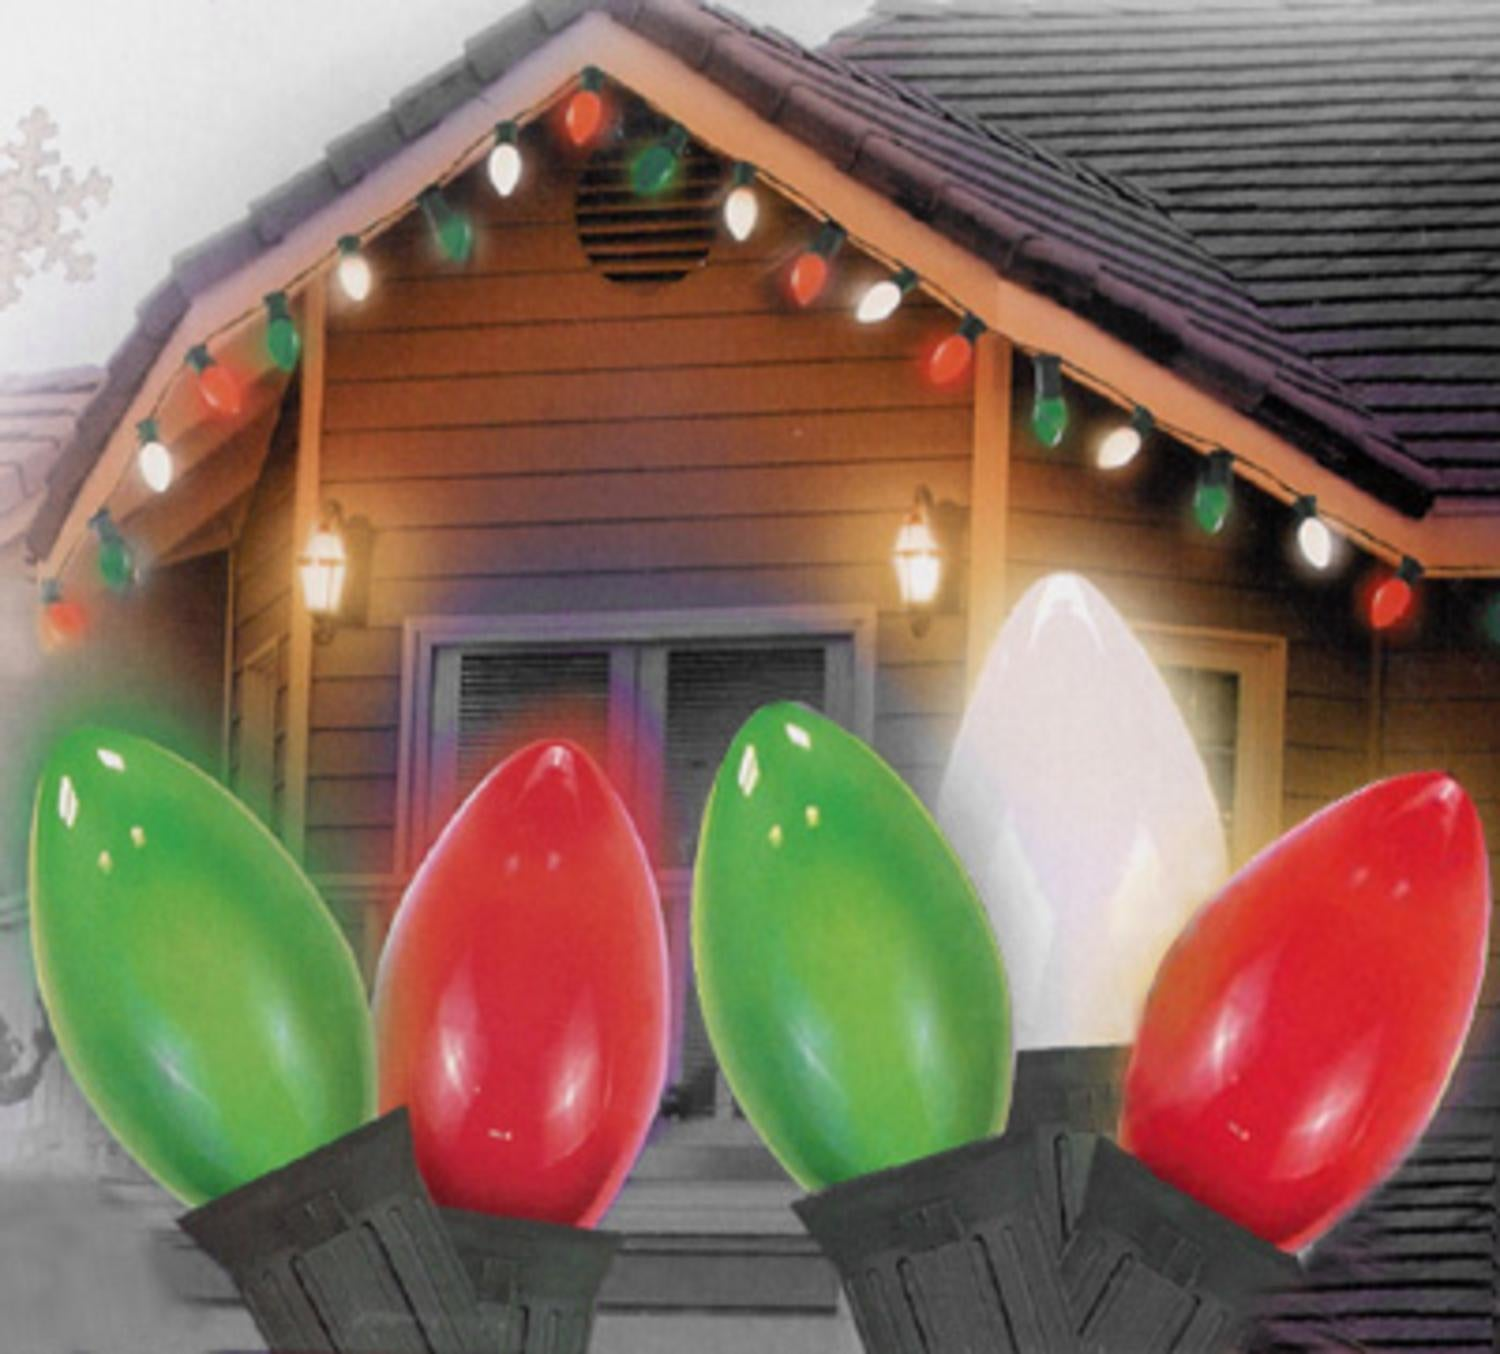 25 opaque green clear white and red c9 christmas lights 24 ftgreen wire